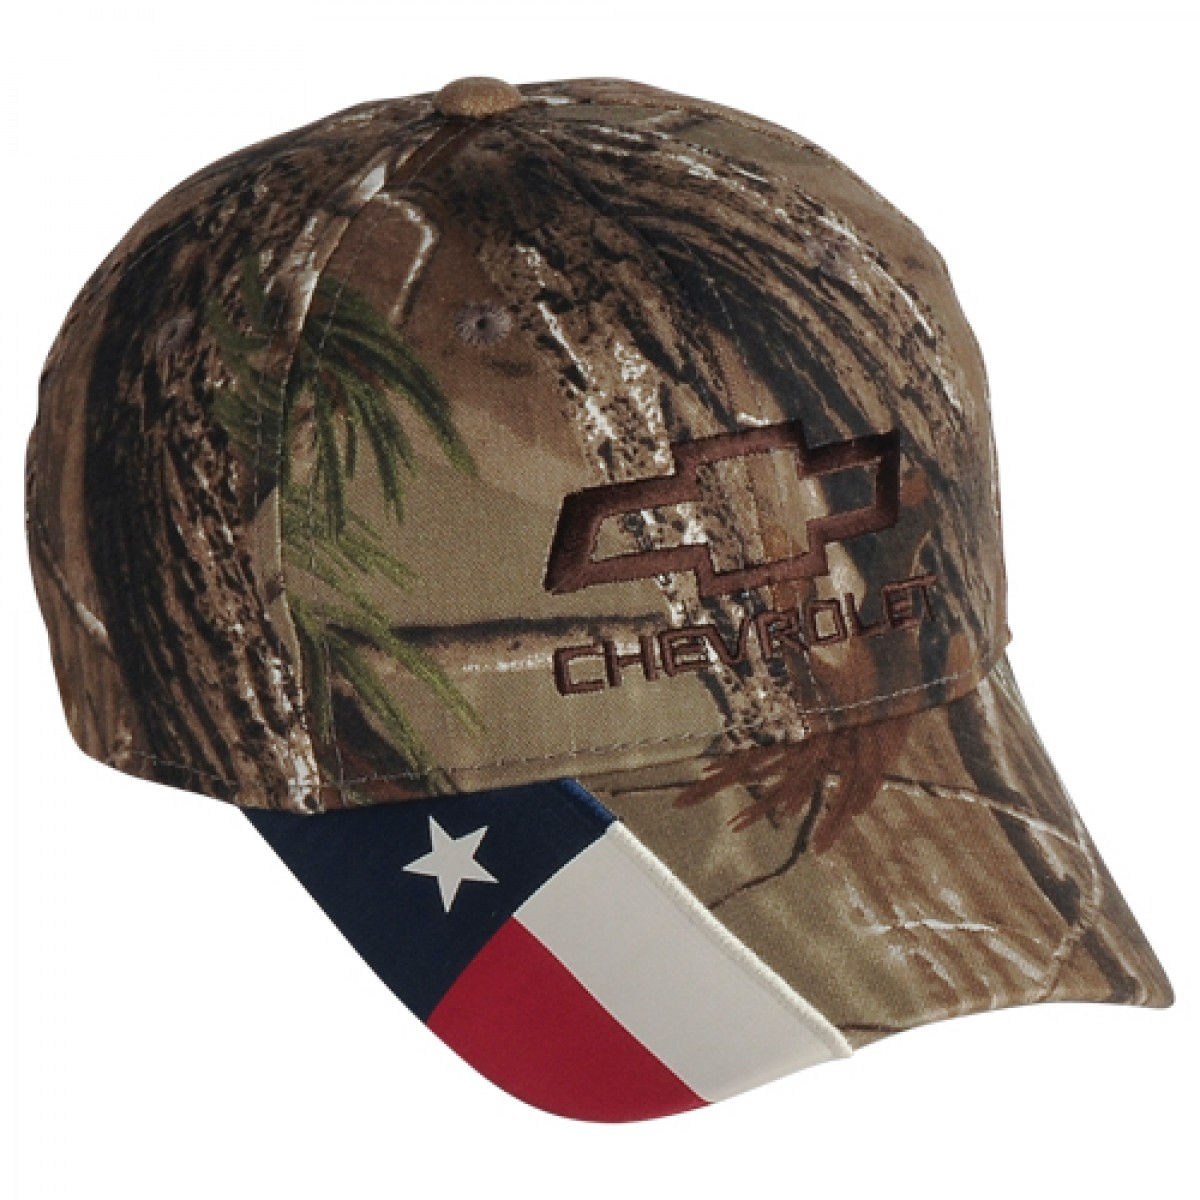 e1f0b29c9 reduced chevy camouflage hat with texas flag by real tree a7c63 3b419